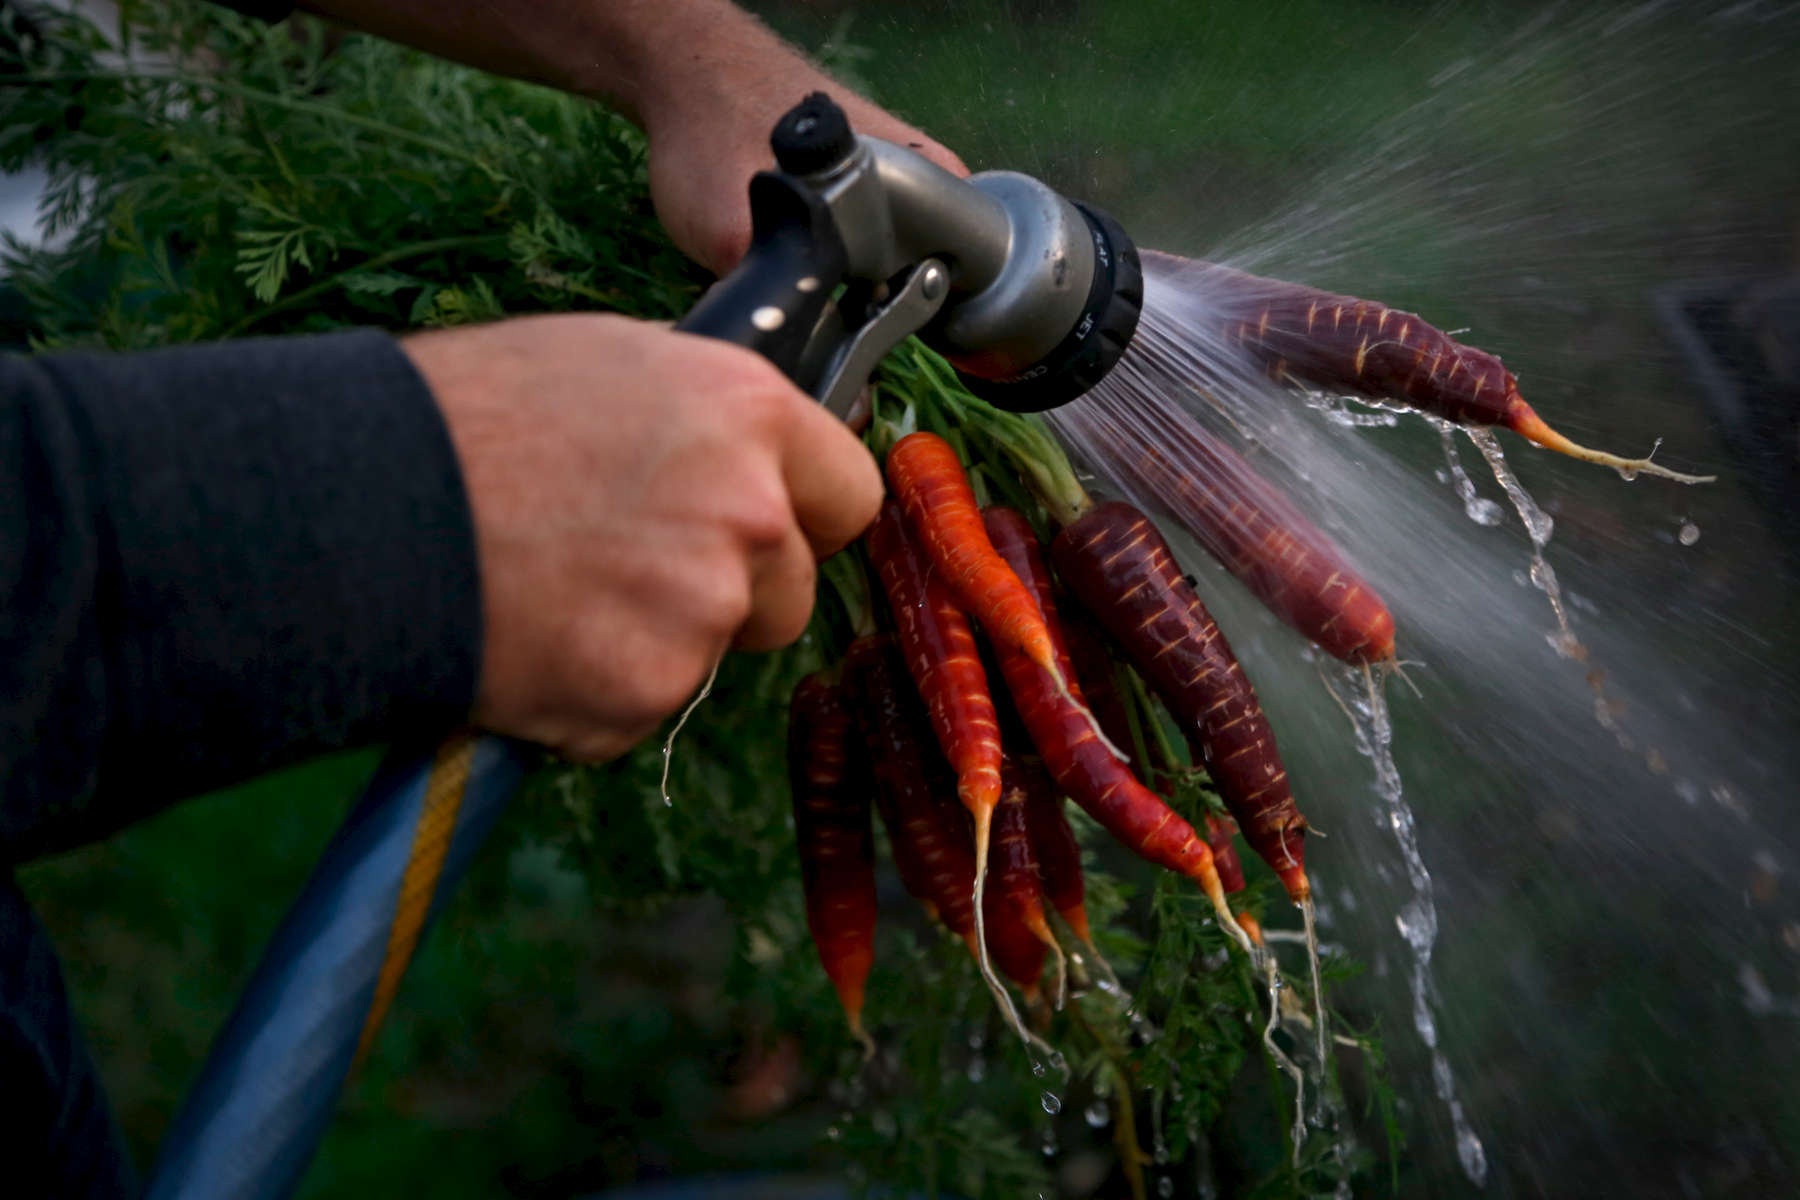 Fleet Farming Oakland farm manager Justin Vandenbroeck washes off some carrots before making dinner at home in West Oakland. Fleet Farming is another small grass-roots program that currently employs a former WOW intern. (Photo by Preston Gannaway © 2016)